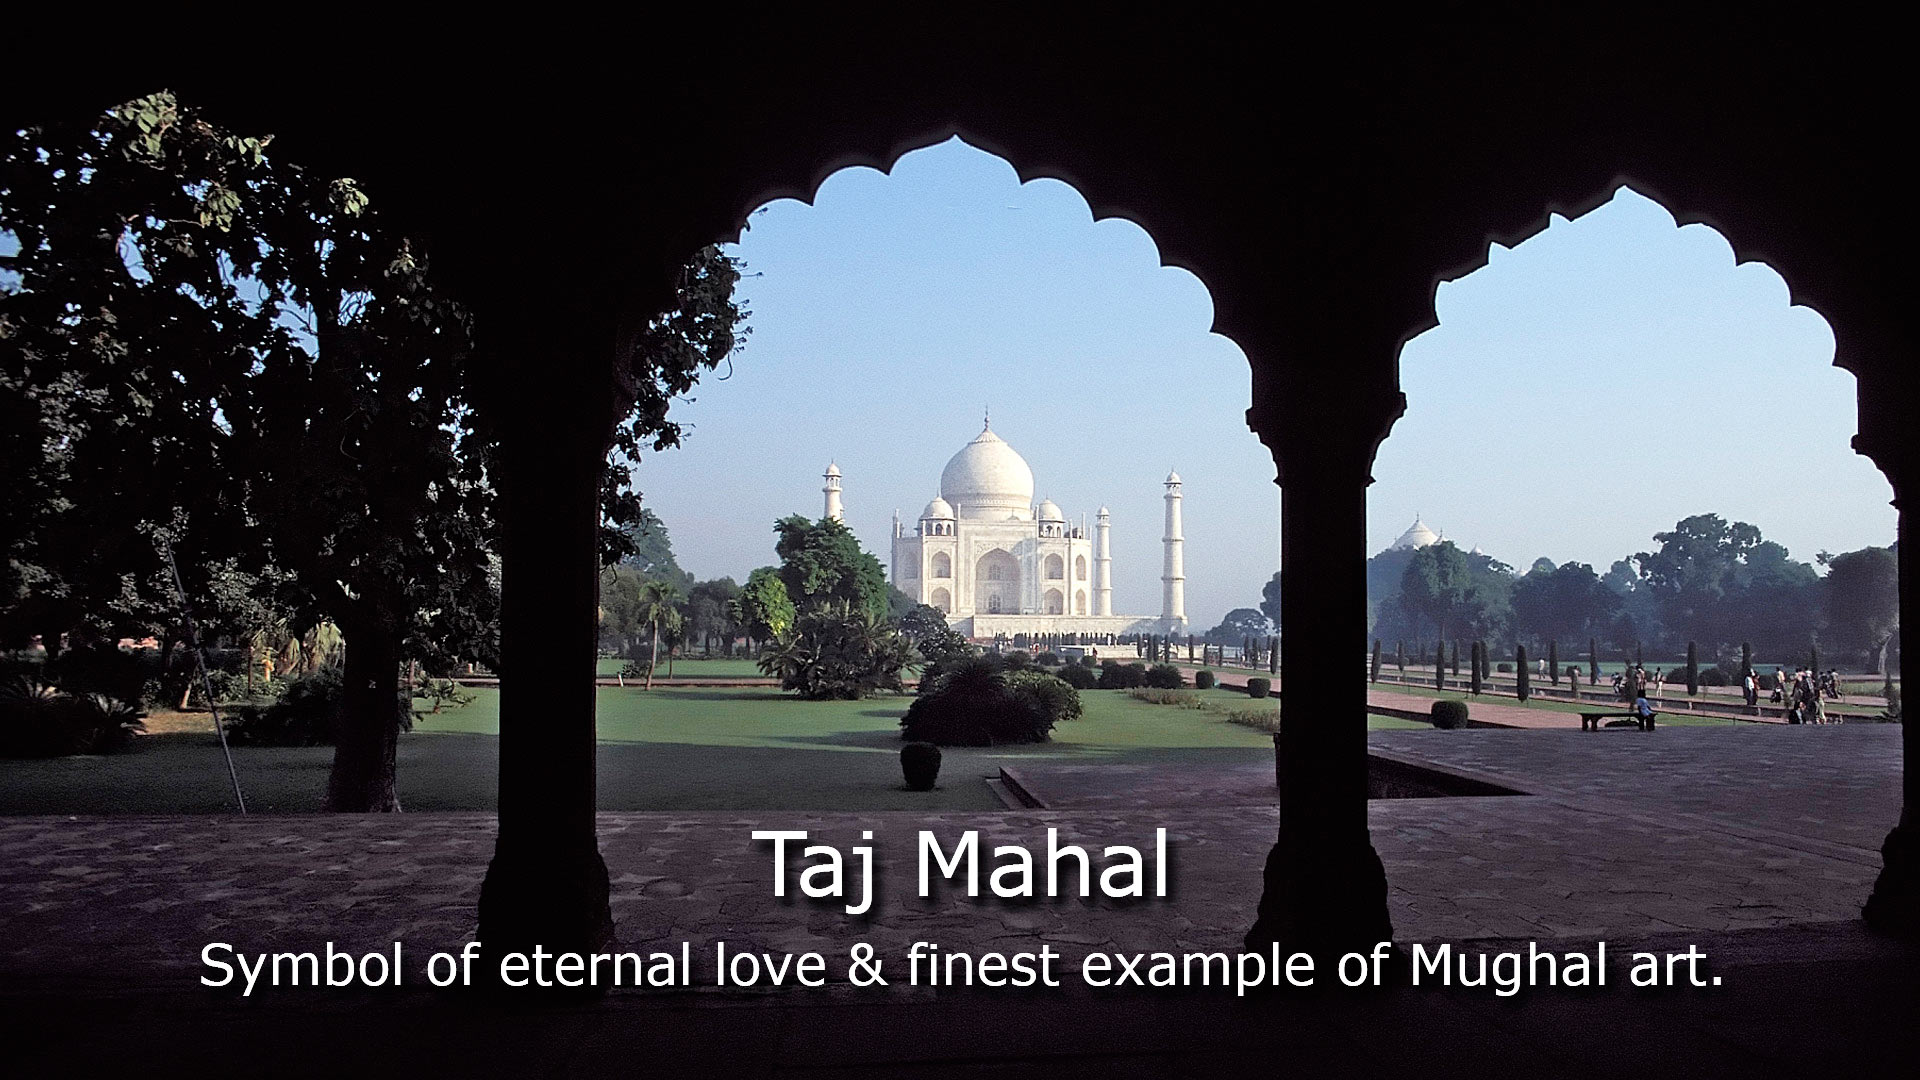 Taj Mahal, symbol of eternal love & finest example of Moghal art, India